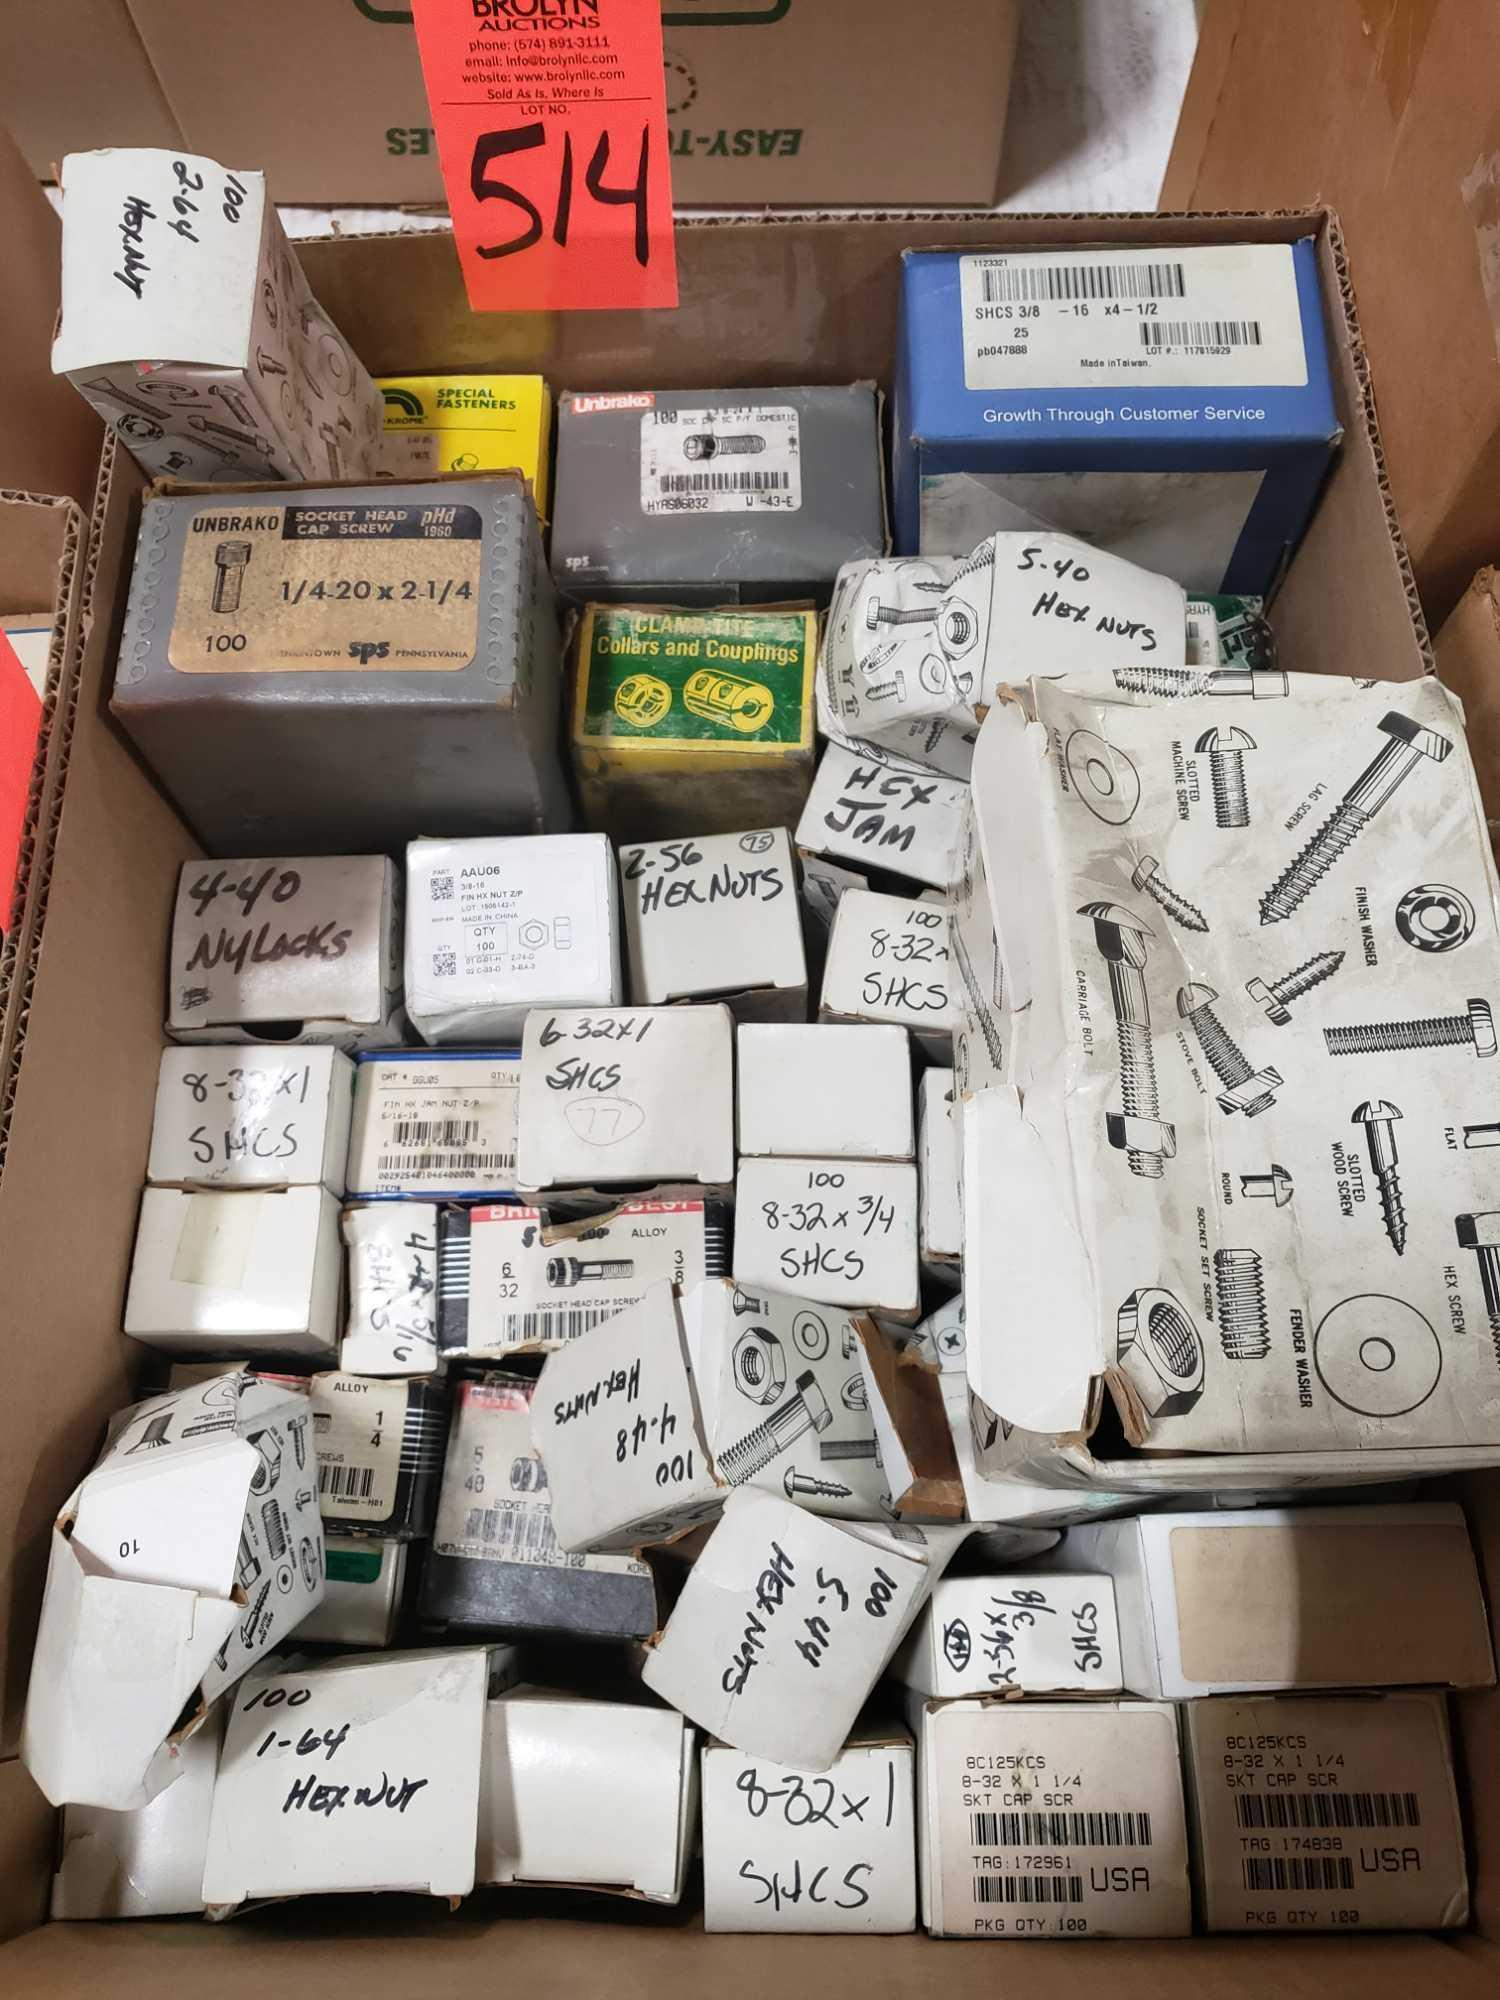 Qty 40 - Assorted boxes of new hardware, high grade, nuts, bolts, washers, etc. New in box. - Image 2 of 2